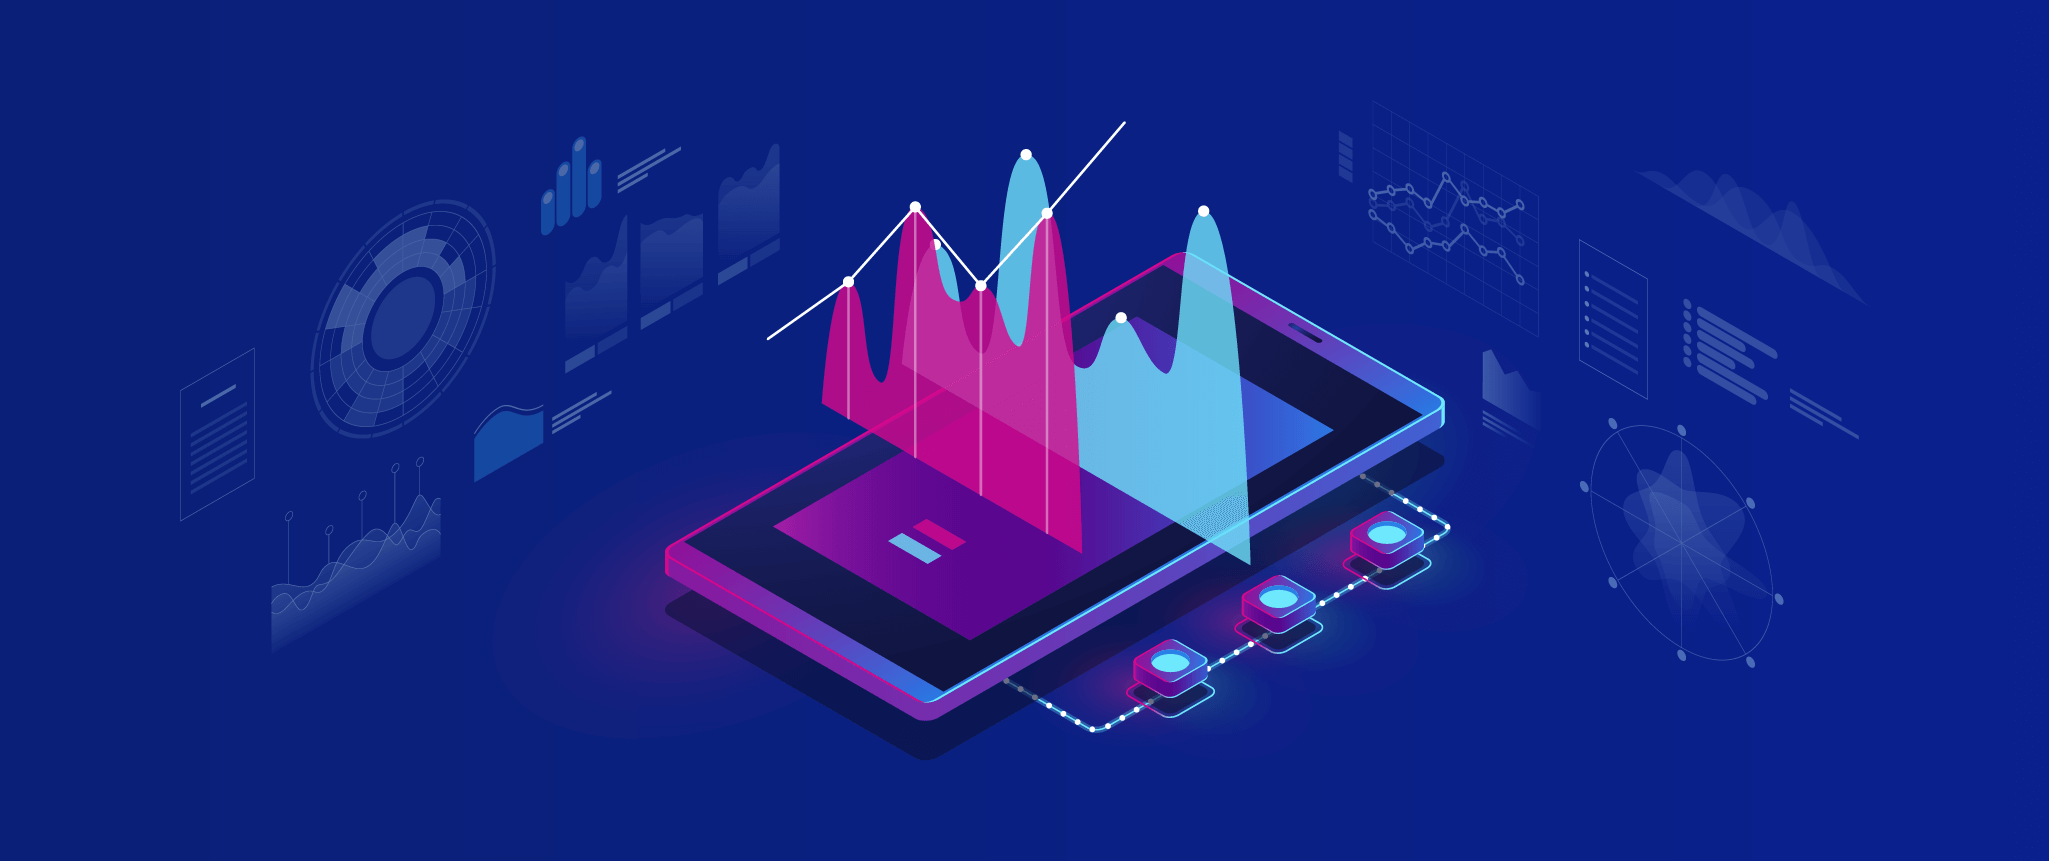 Top 3 Trends Affecting the Mobile Analytics Market From Gartner's Latest Report